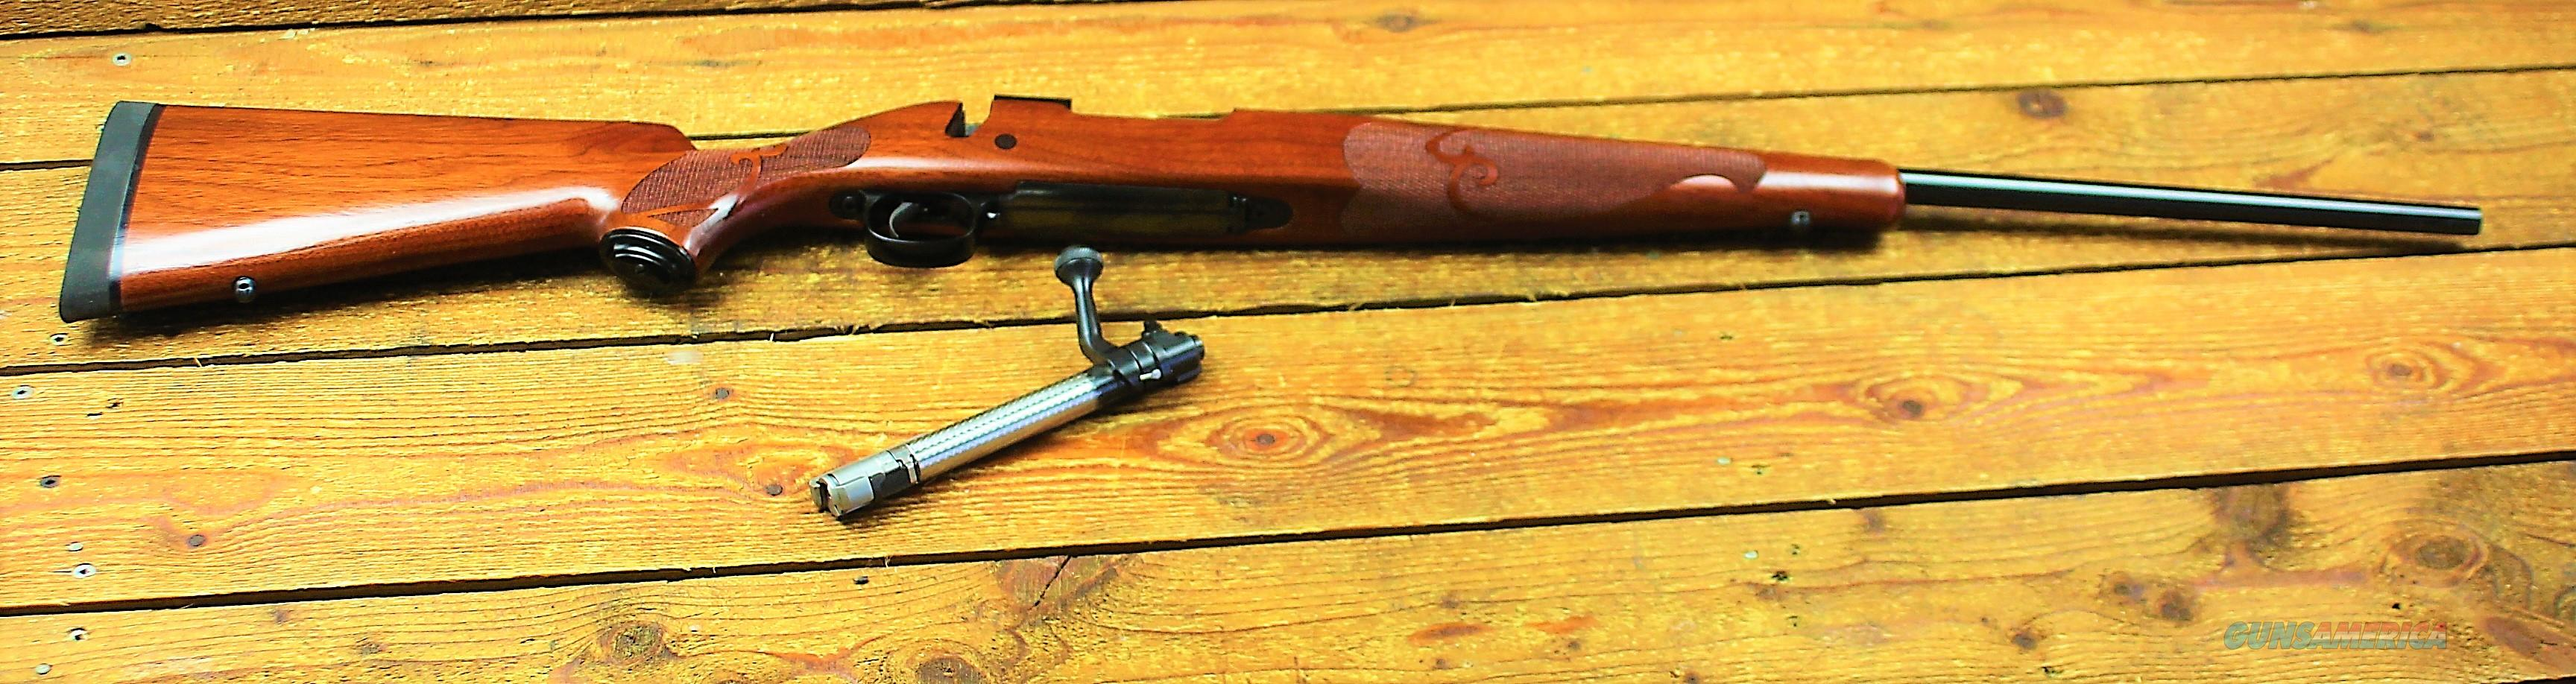 Winchester M70 Featherweight offers pre 64 style  Bolt Action Rifle 535109220, 308 Winchester, 22 in, Walnut Stock, Blue Finish, 5 Rds EASY PAY LAYAWAY $74  Guns > Rifles > Winchester Rifles - Modern Bolt/Auto/Single > Model 70 > Post-64